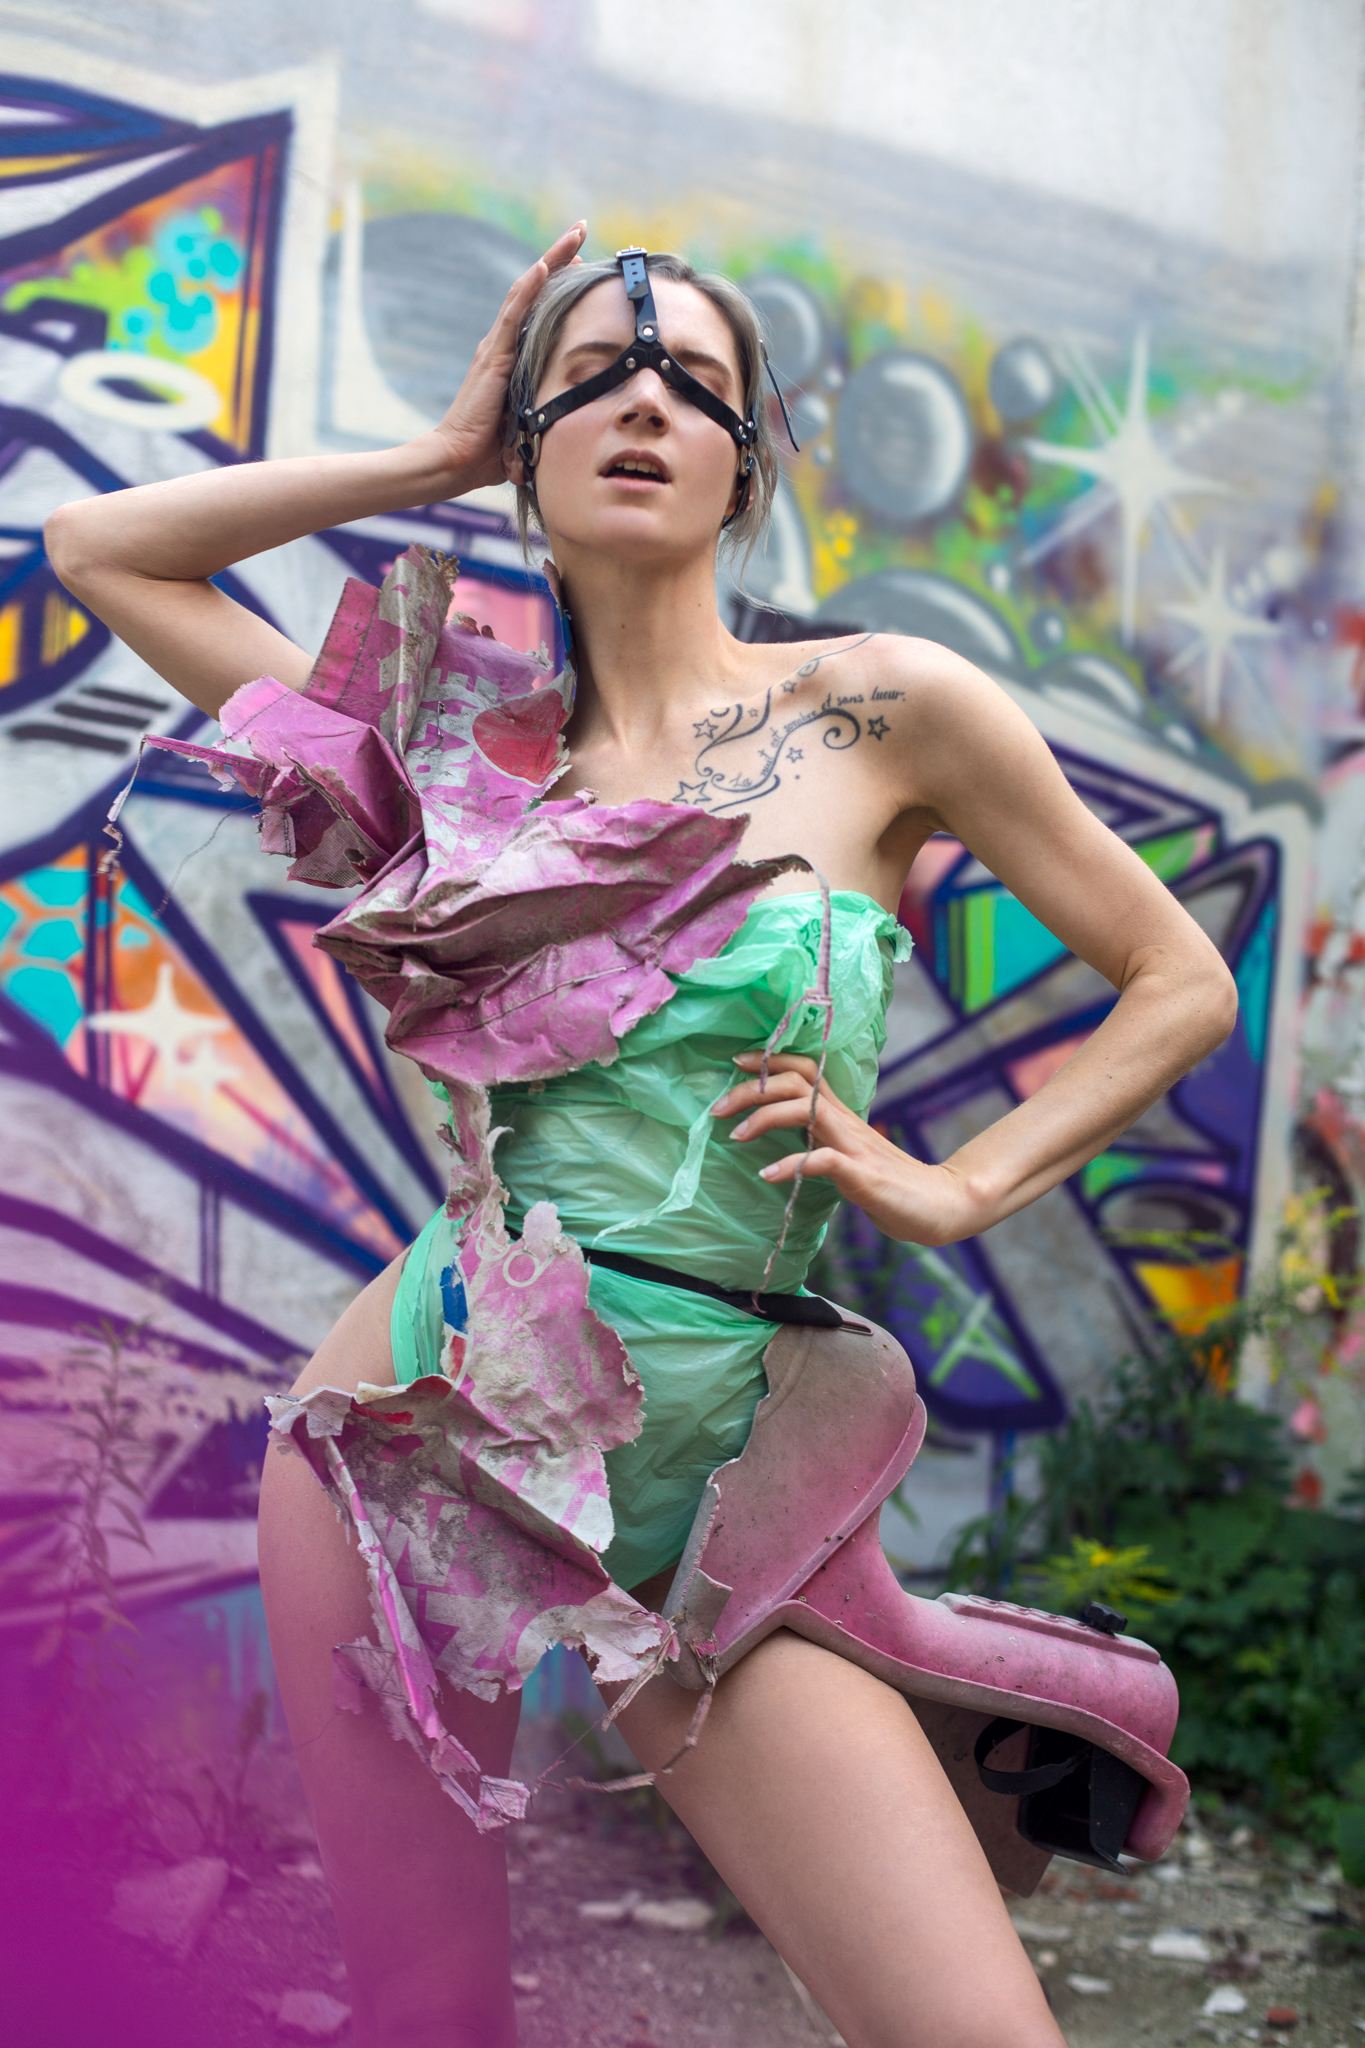 Roxx, shot by Redd, at an abandoned factory in Lodz, Poland, wearing a garment constructed from eco-plastic trash bags, crumbling Pepsi packaging, and a child's safety seat sourced on site.